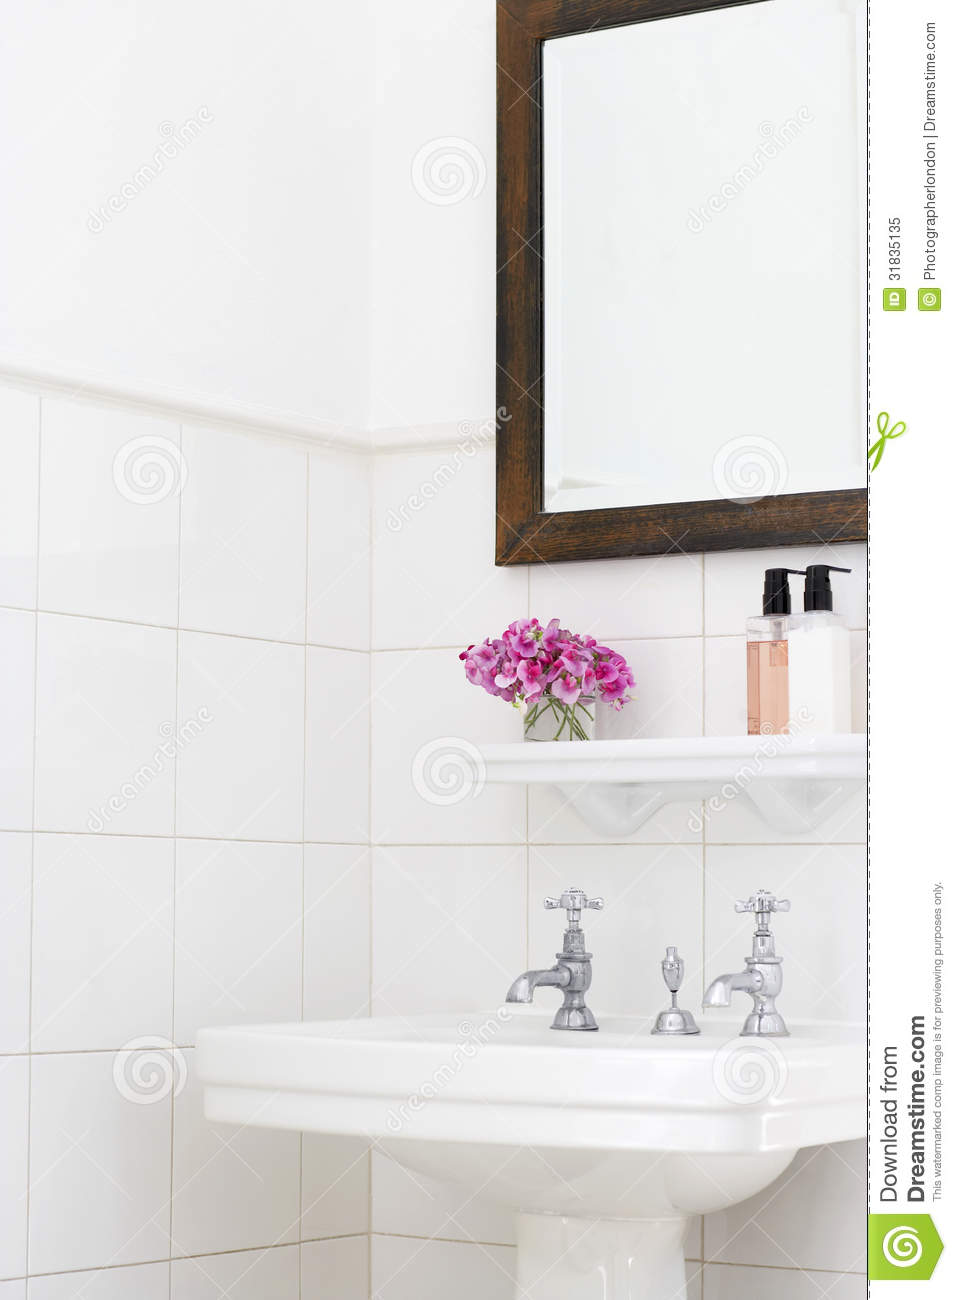 Bathroom Sink And Mirror : Pedestal sink and mirror frame in bathroom.